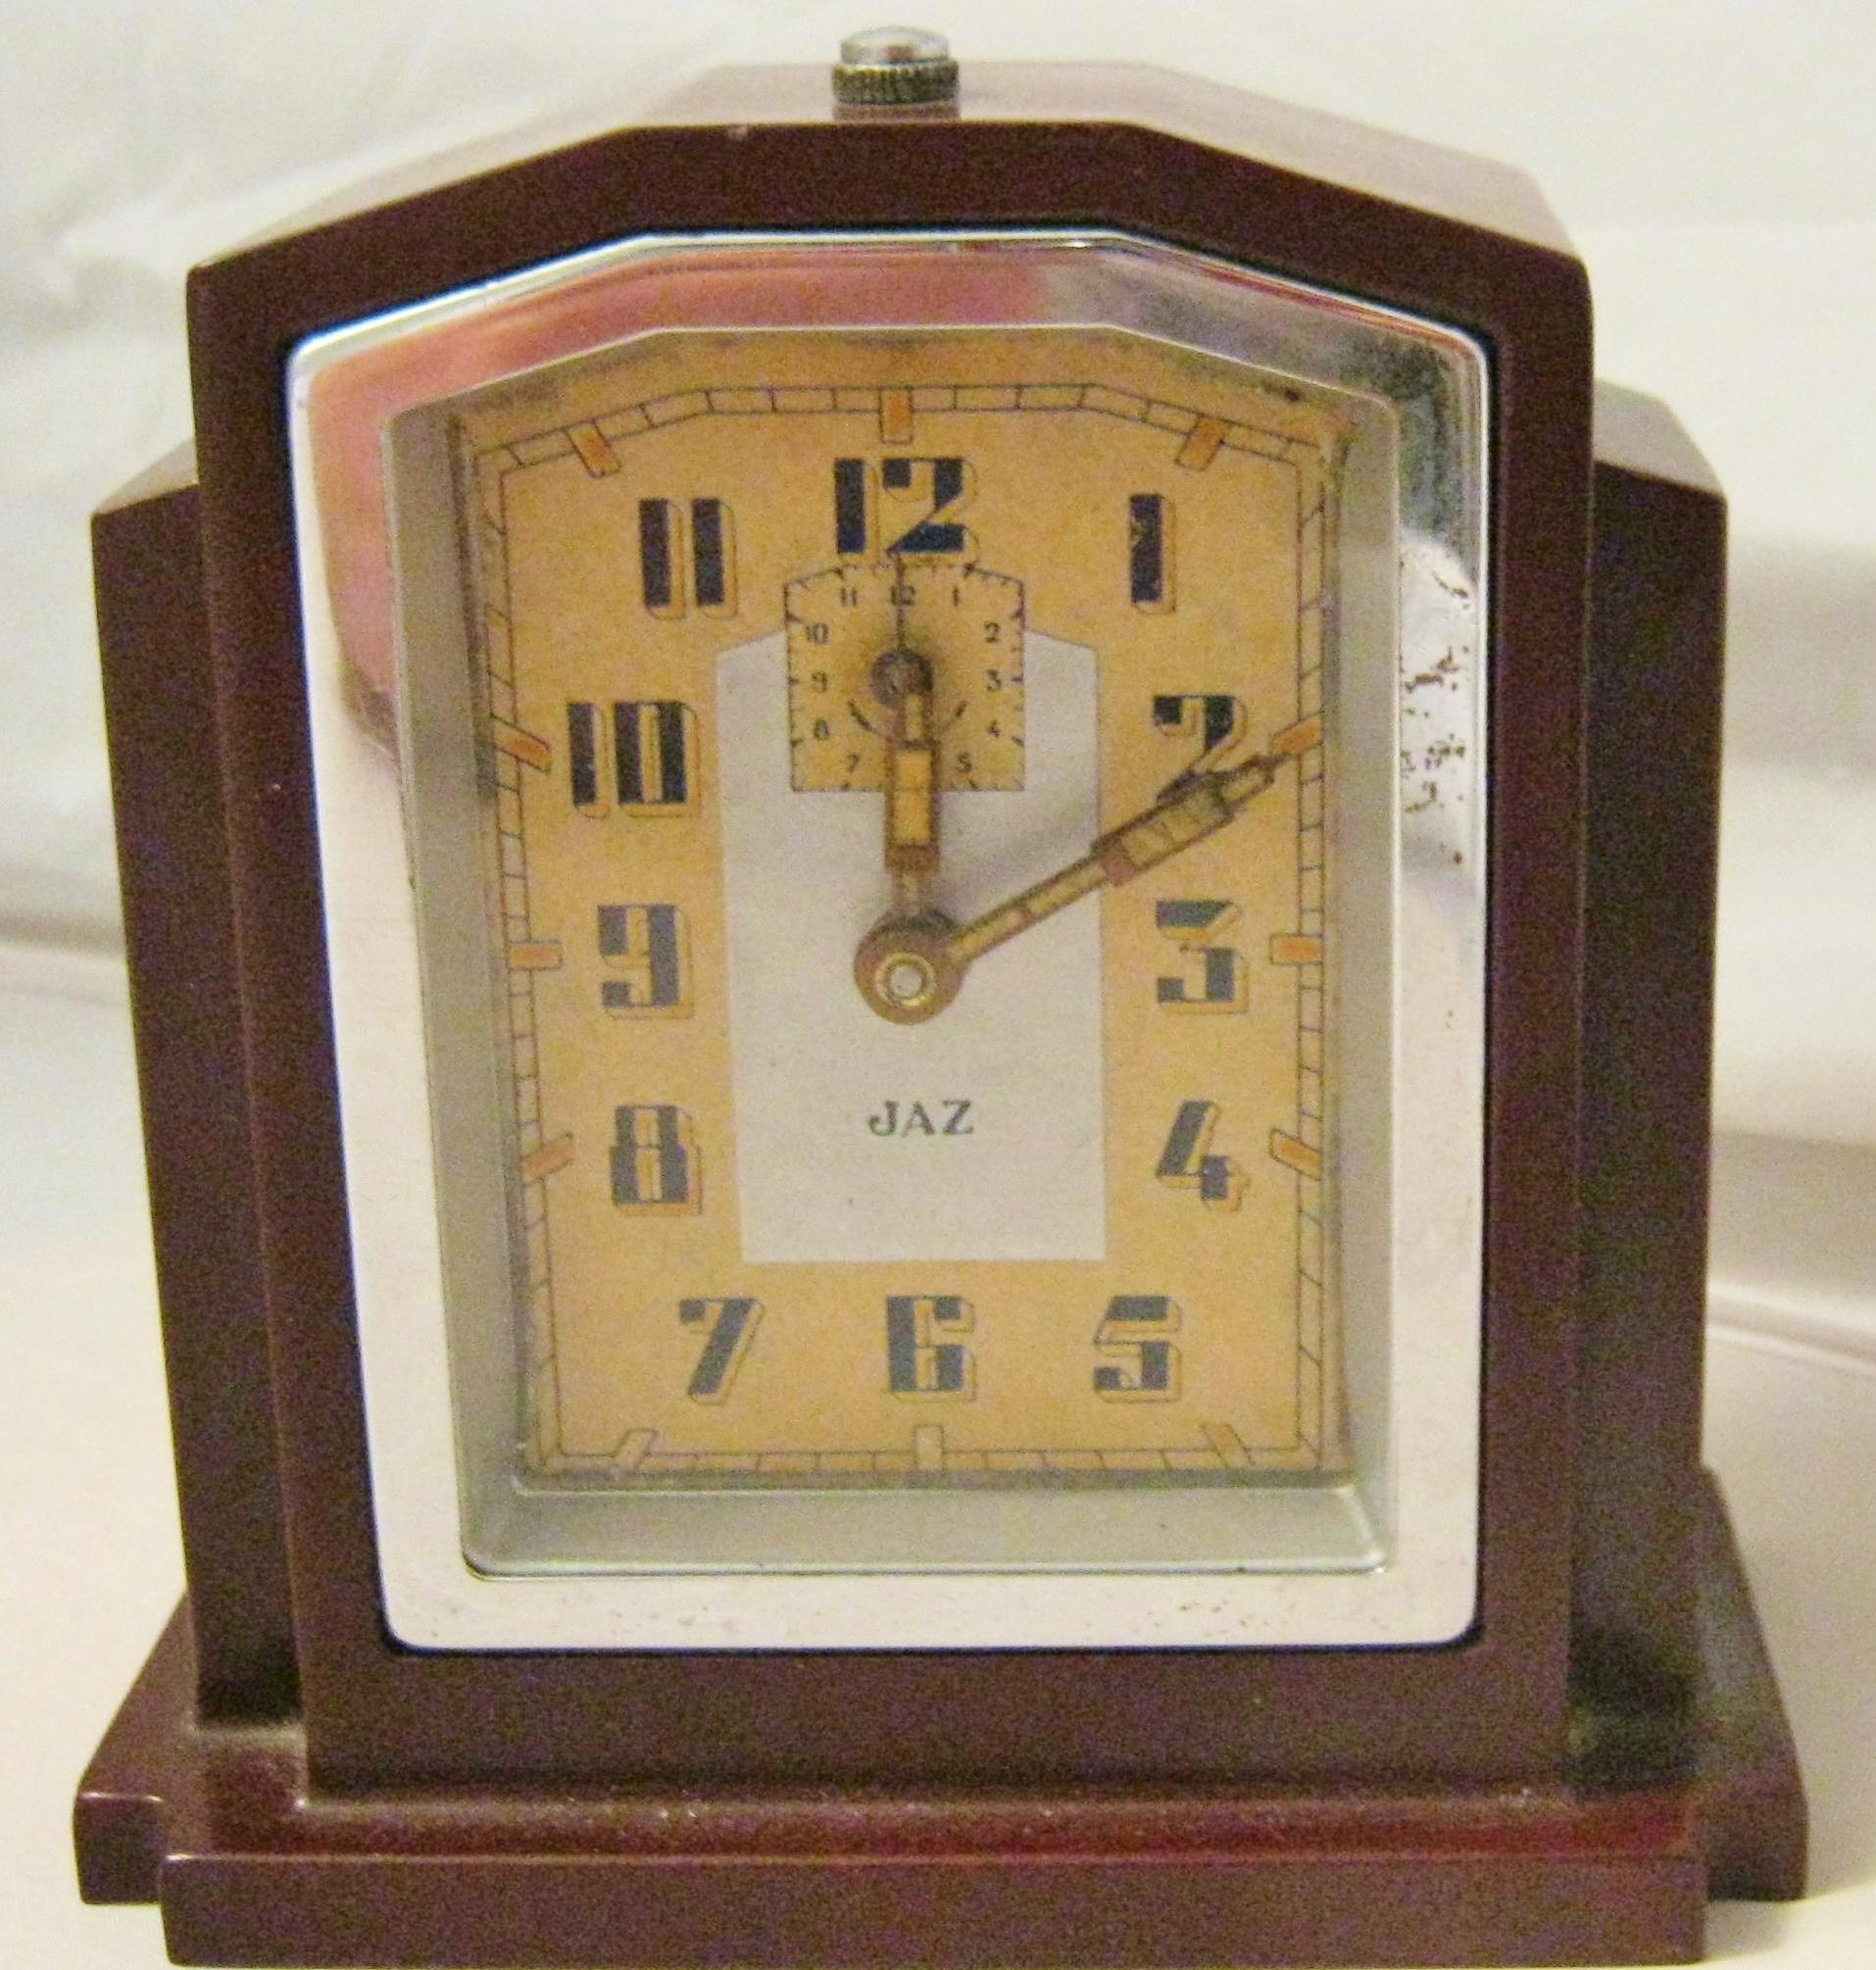 Antiques & Collectors Pieces - Small Pieces of Fine Quality